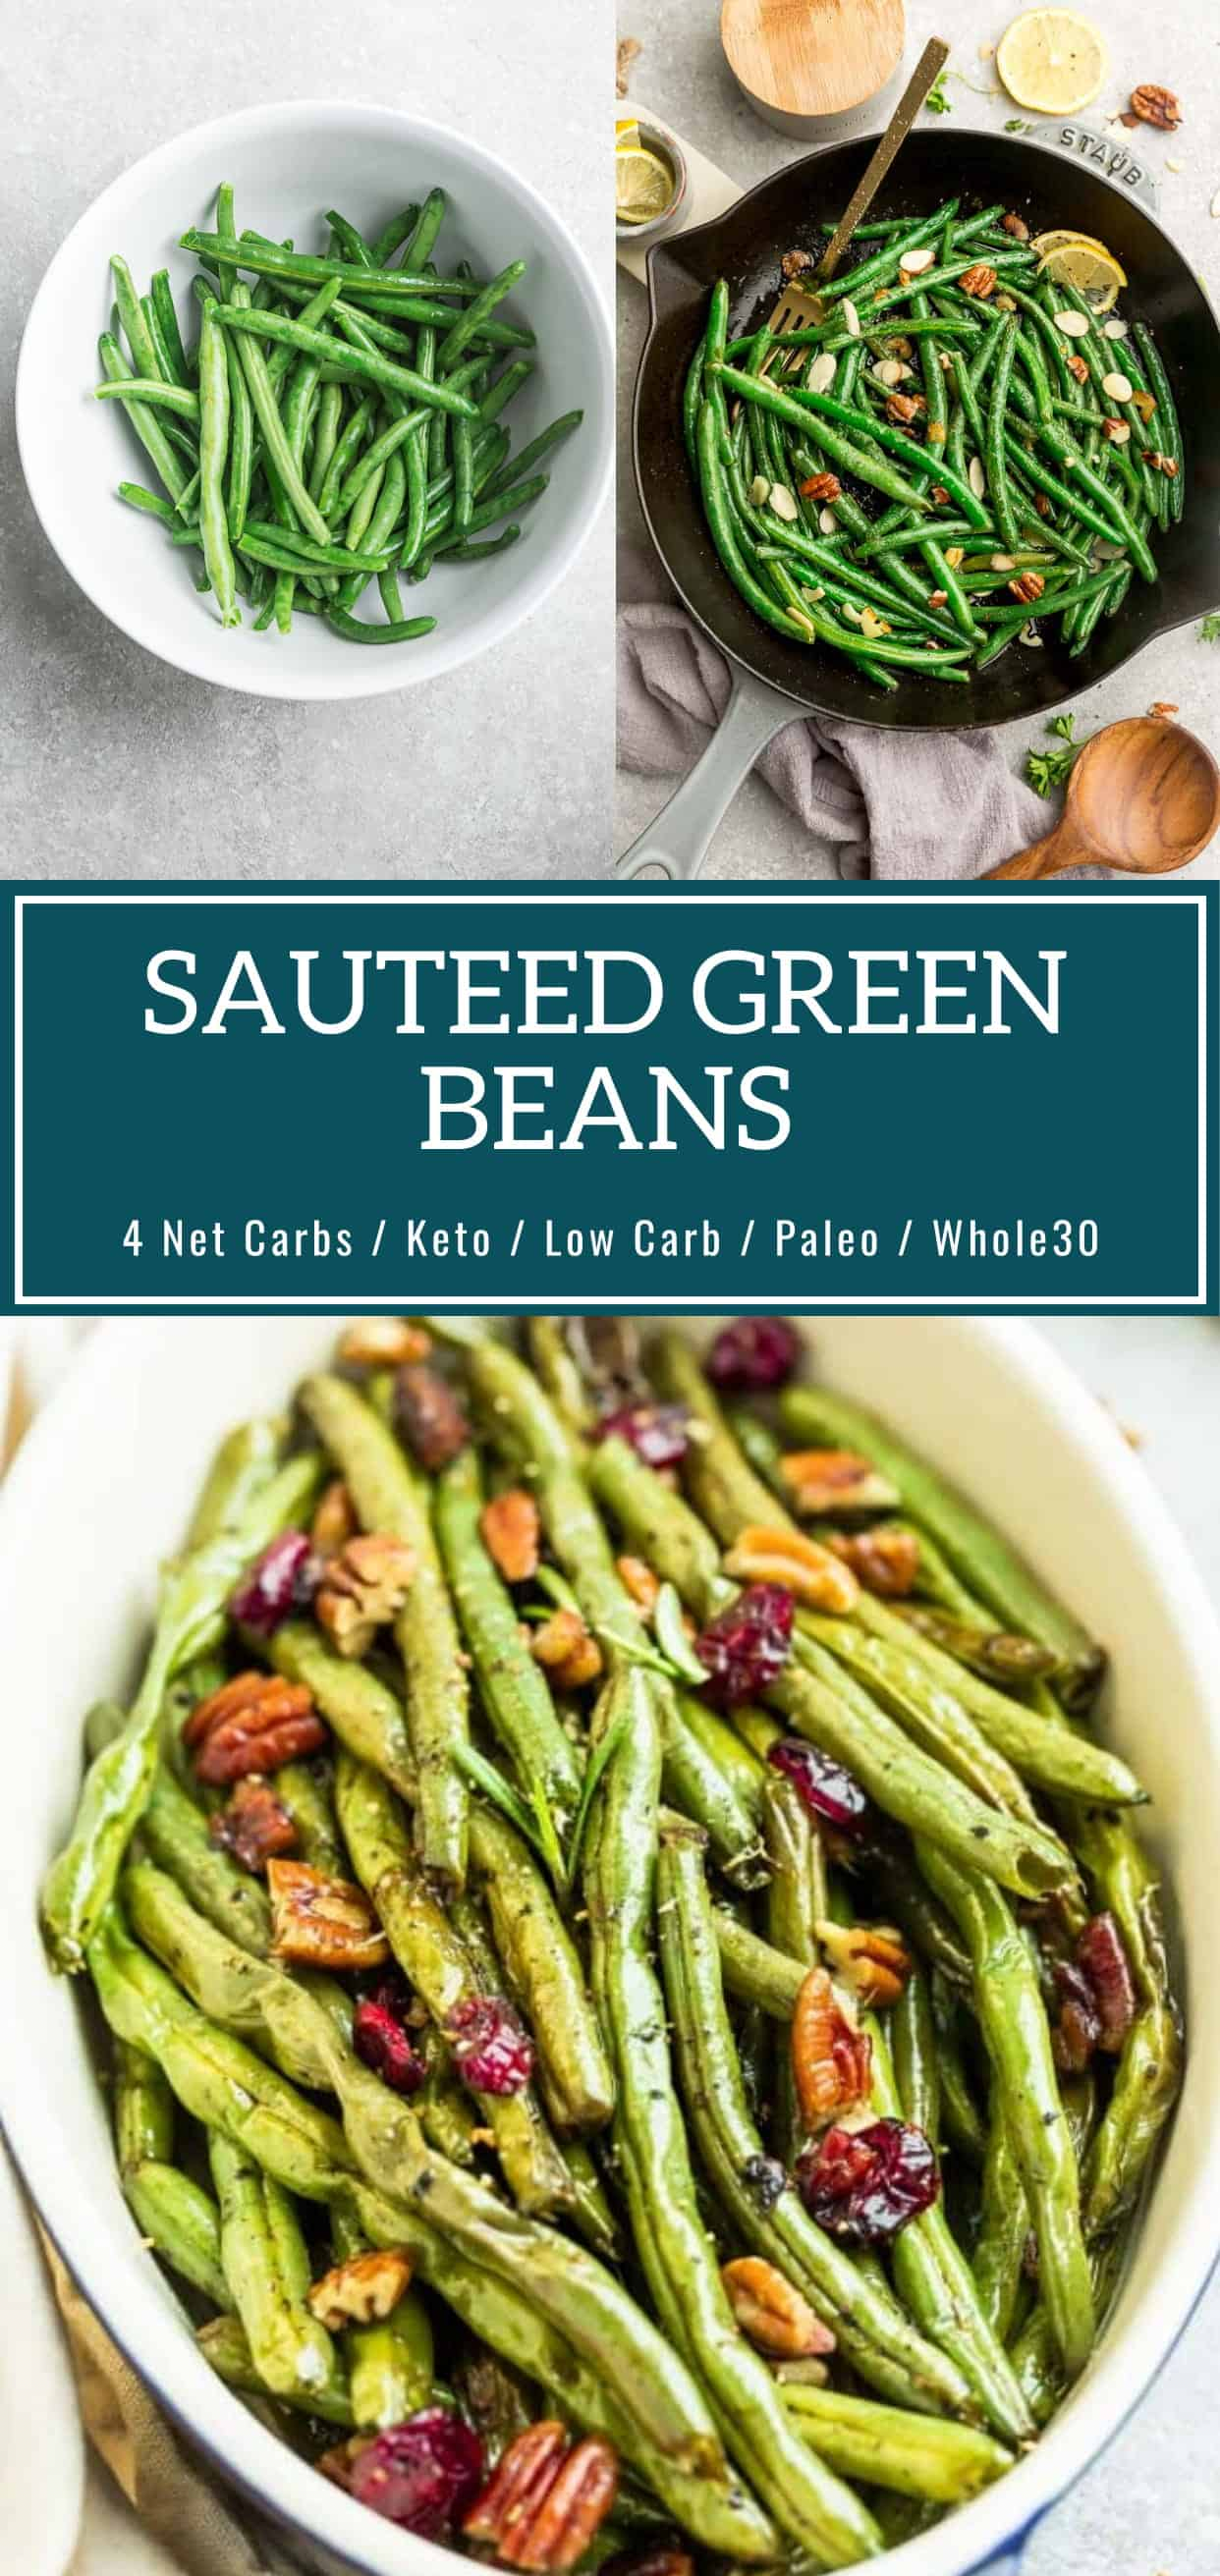 Sauteed Green Beans With Almonds